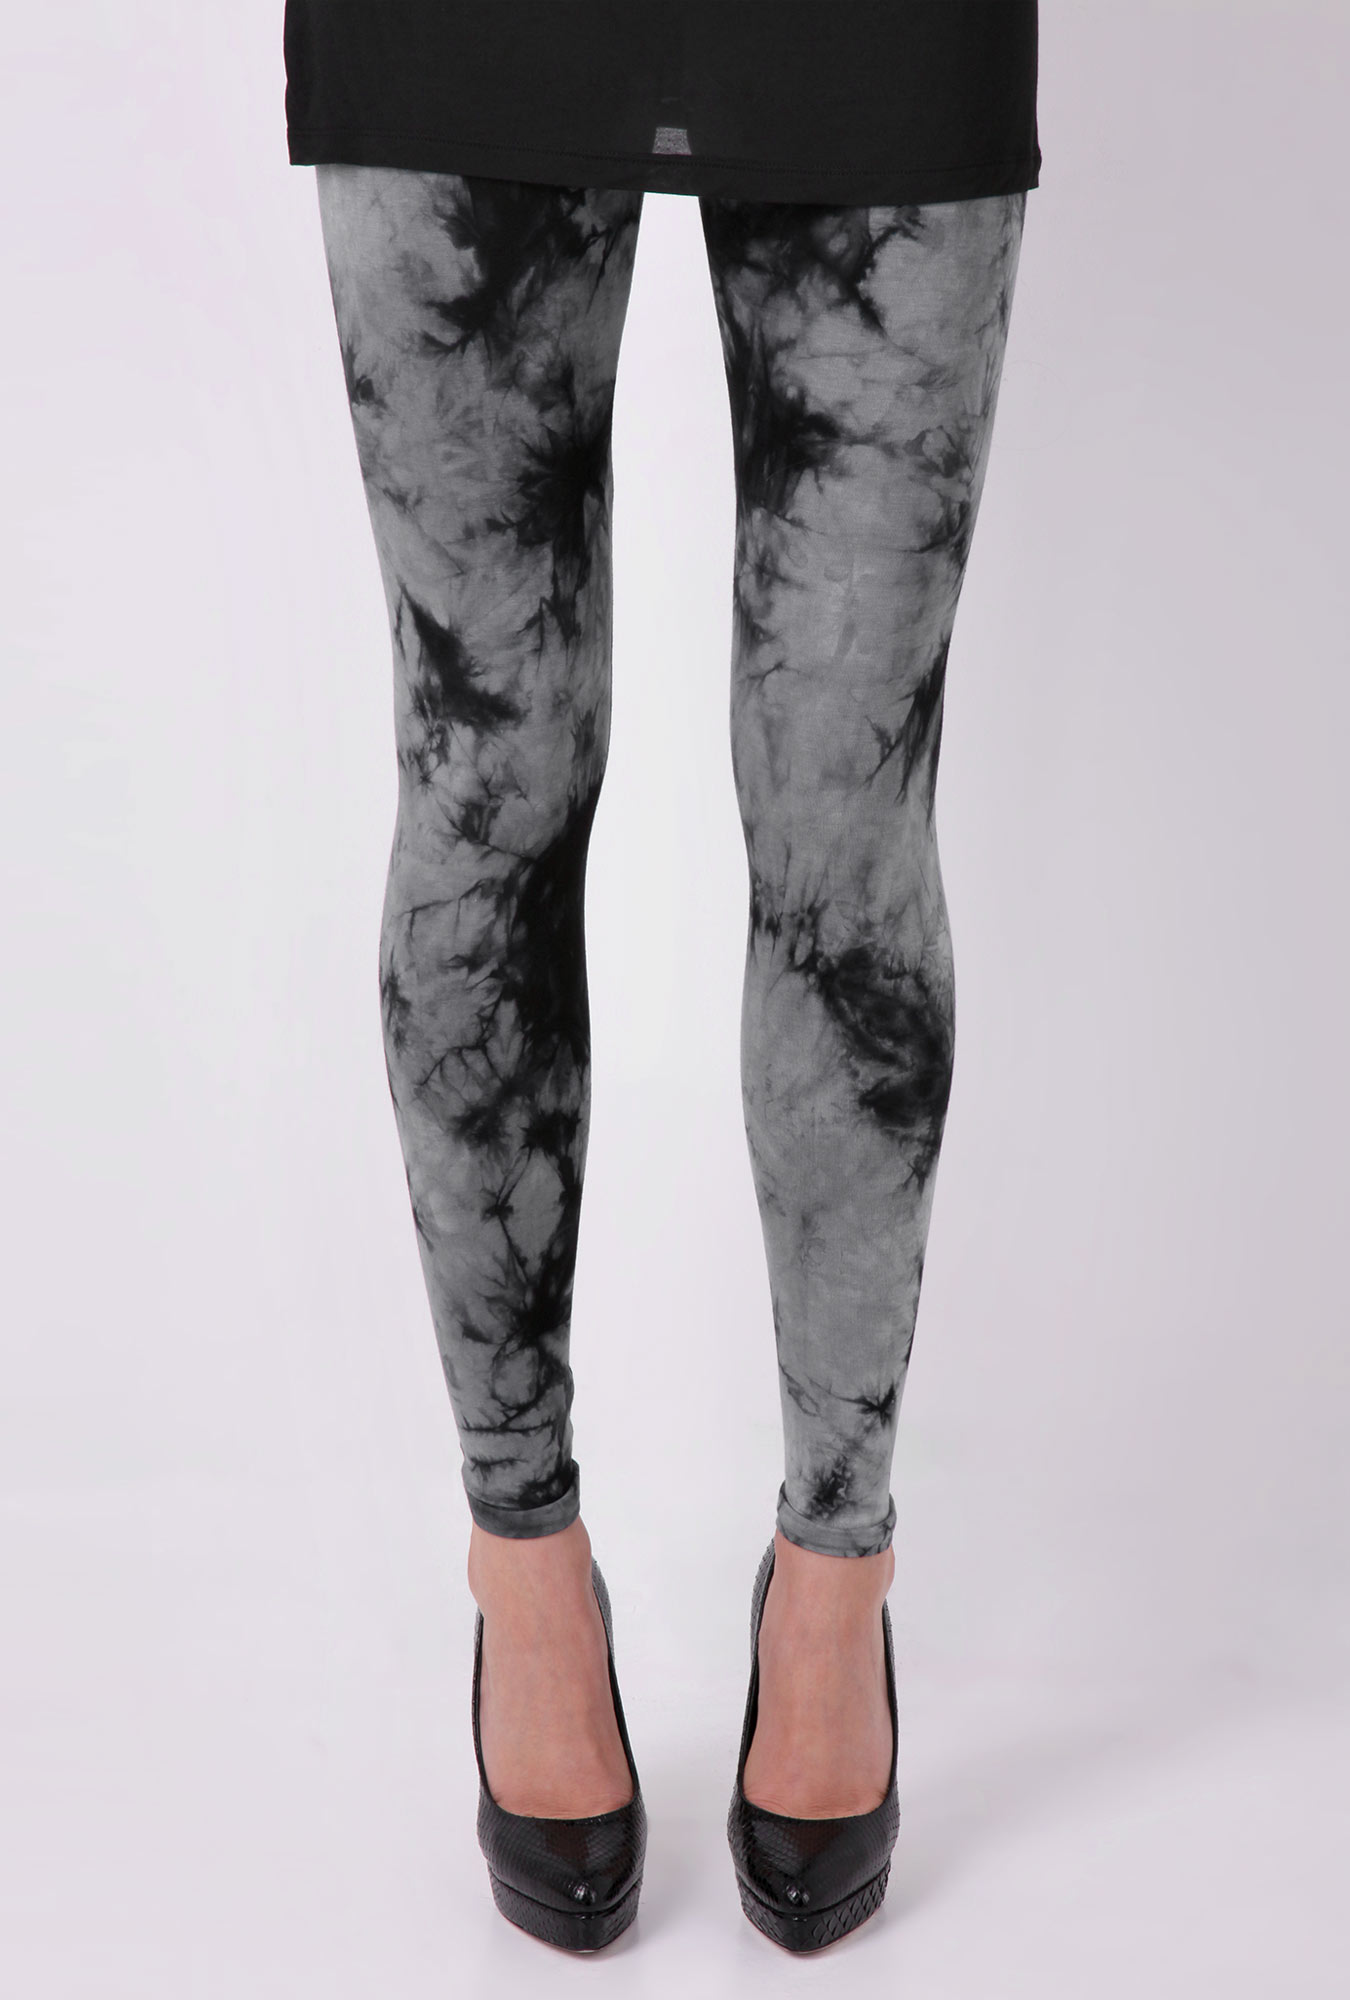 Tie Dye Leggings Uk